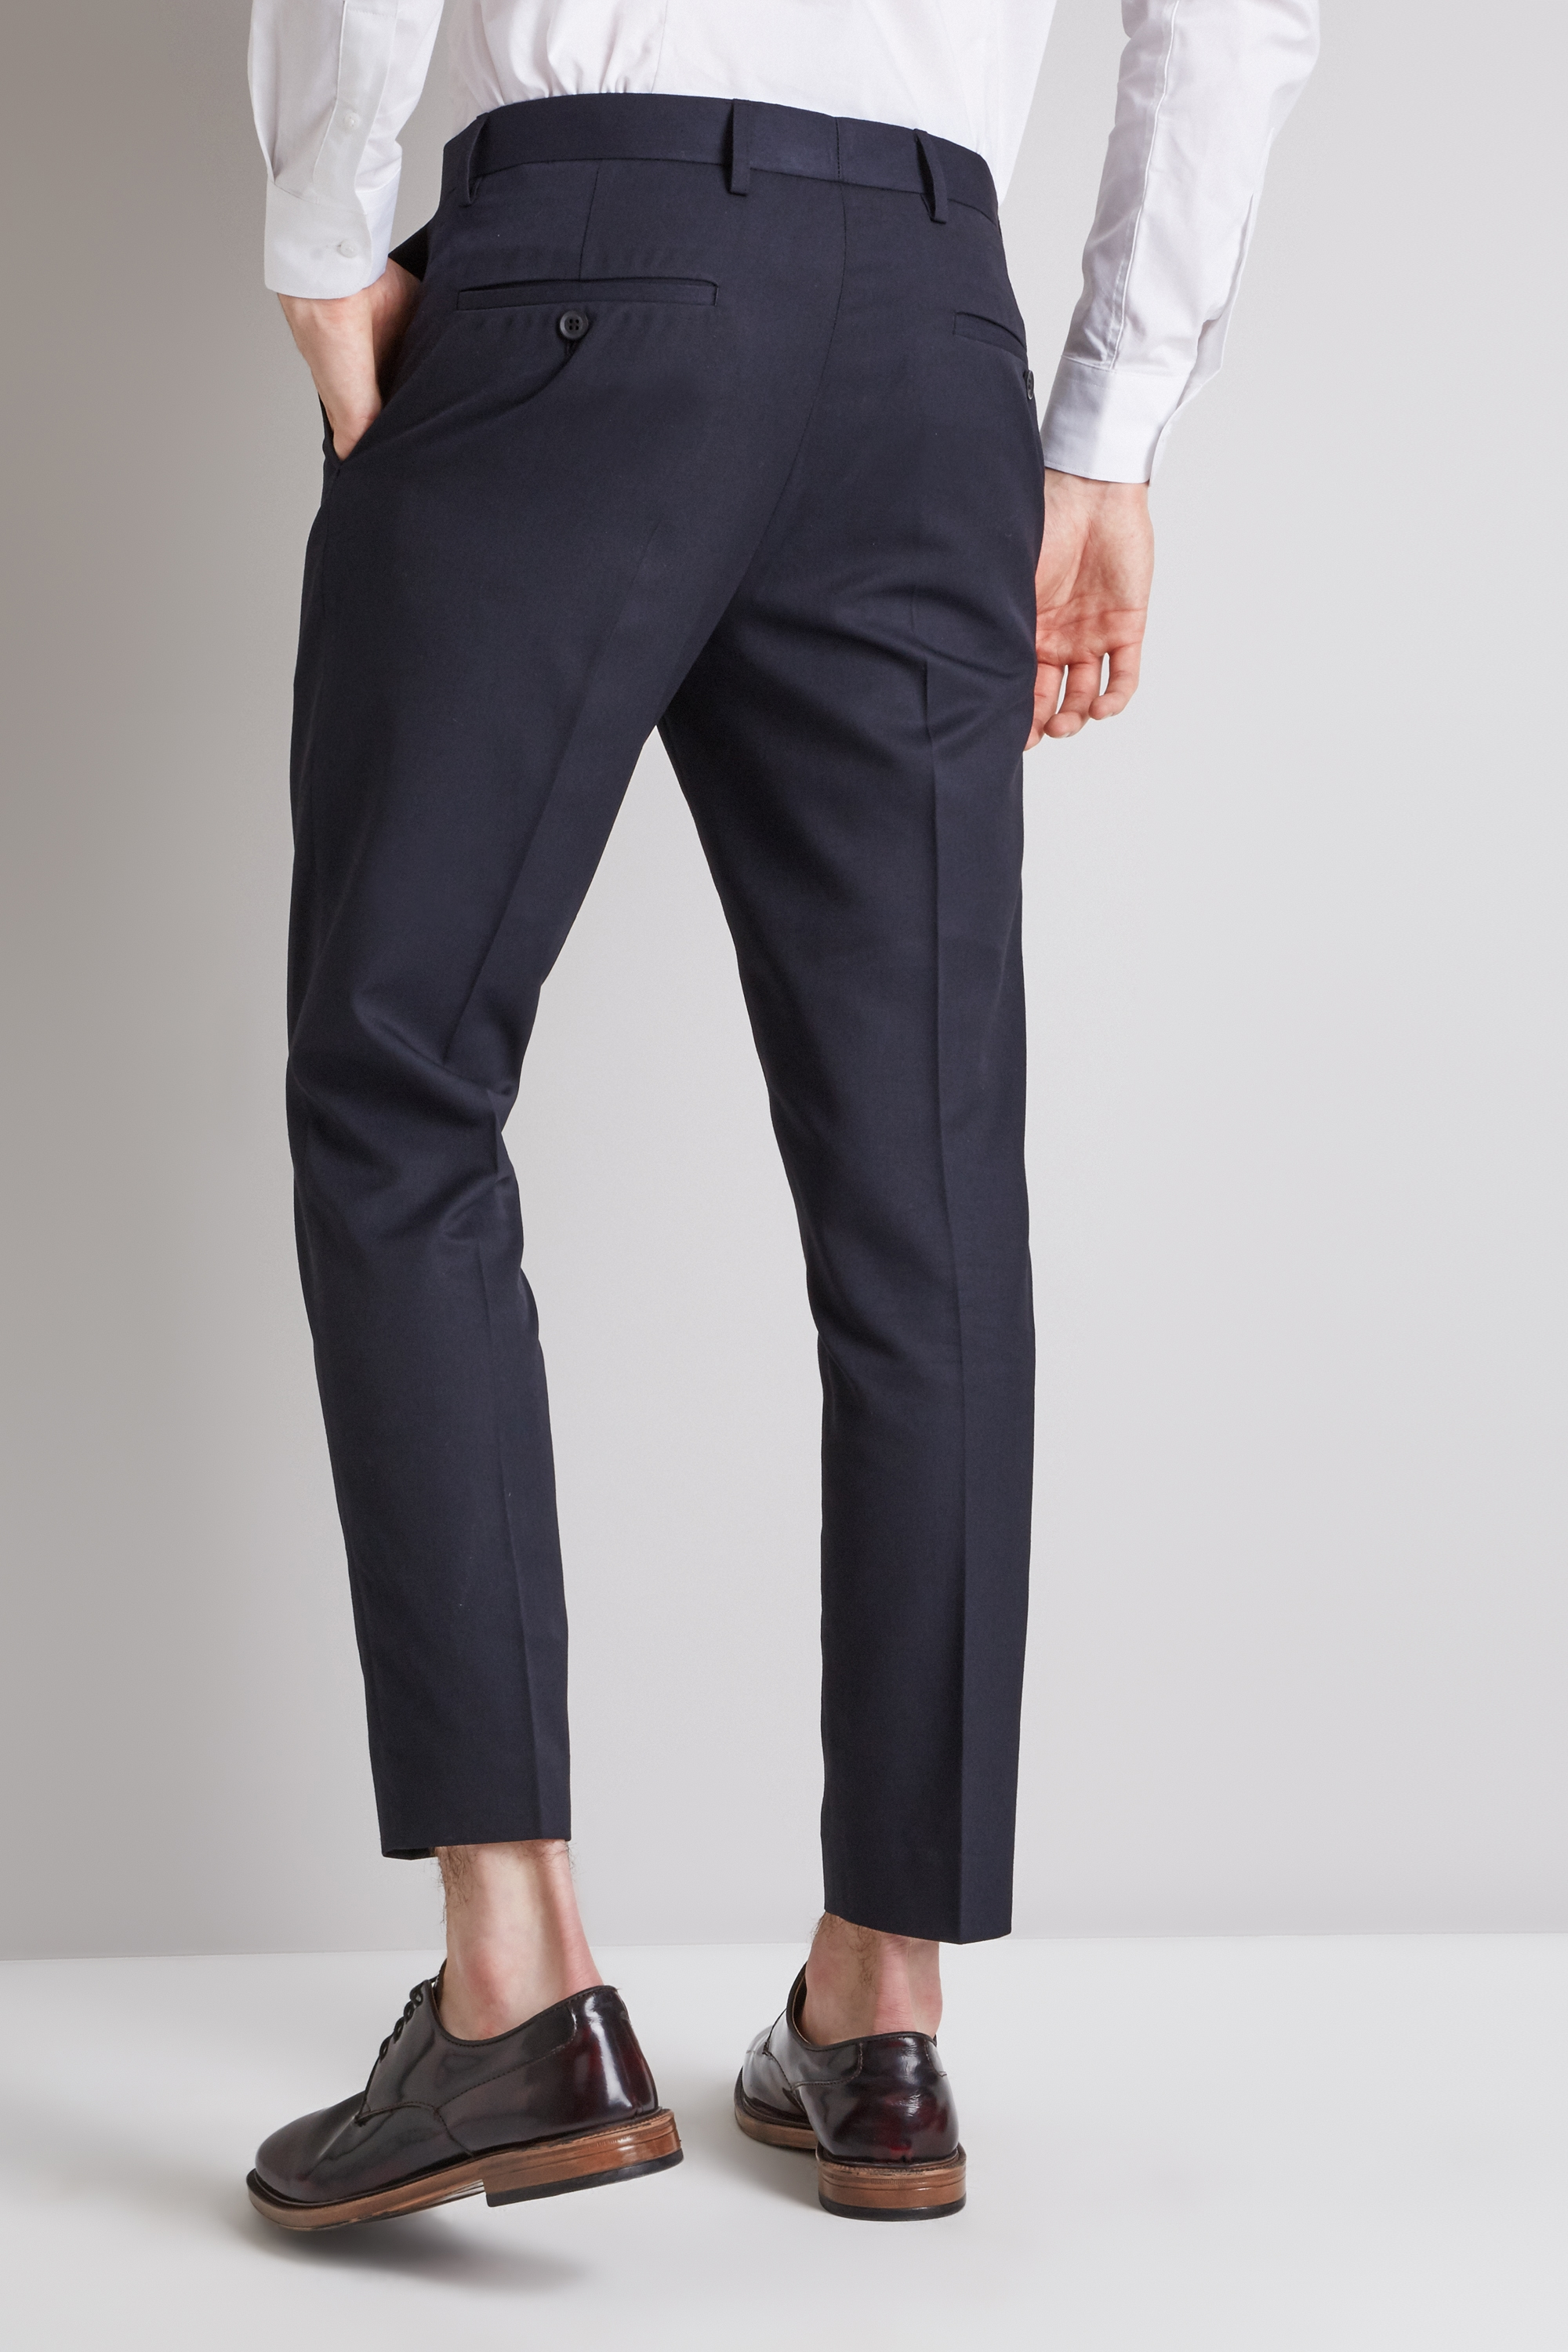 7ce08d31921 Moss London Mens Navy Blue Cropped Trousers Flat Front Slim Fit Casual Pants